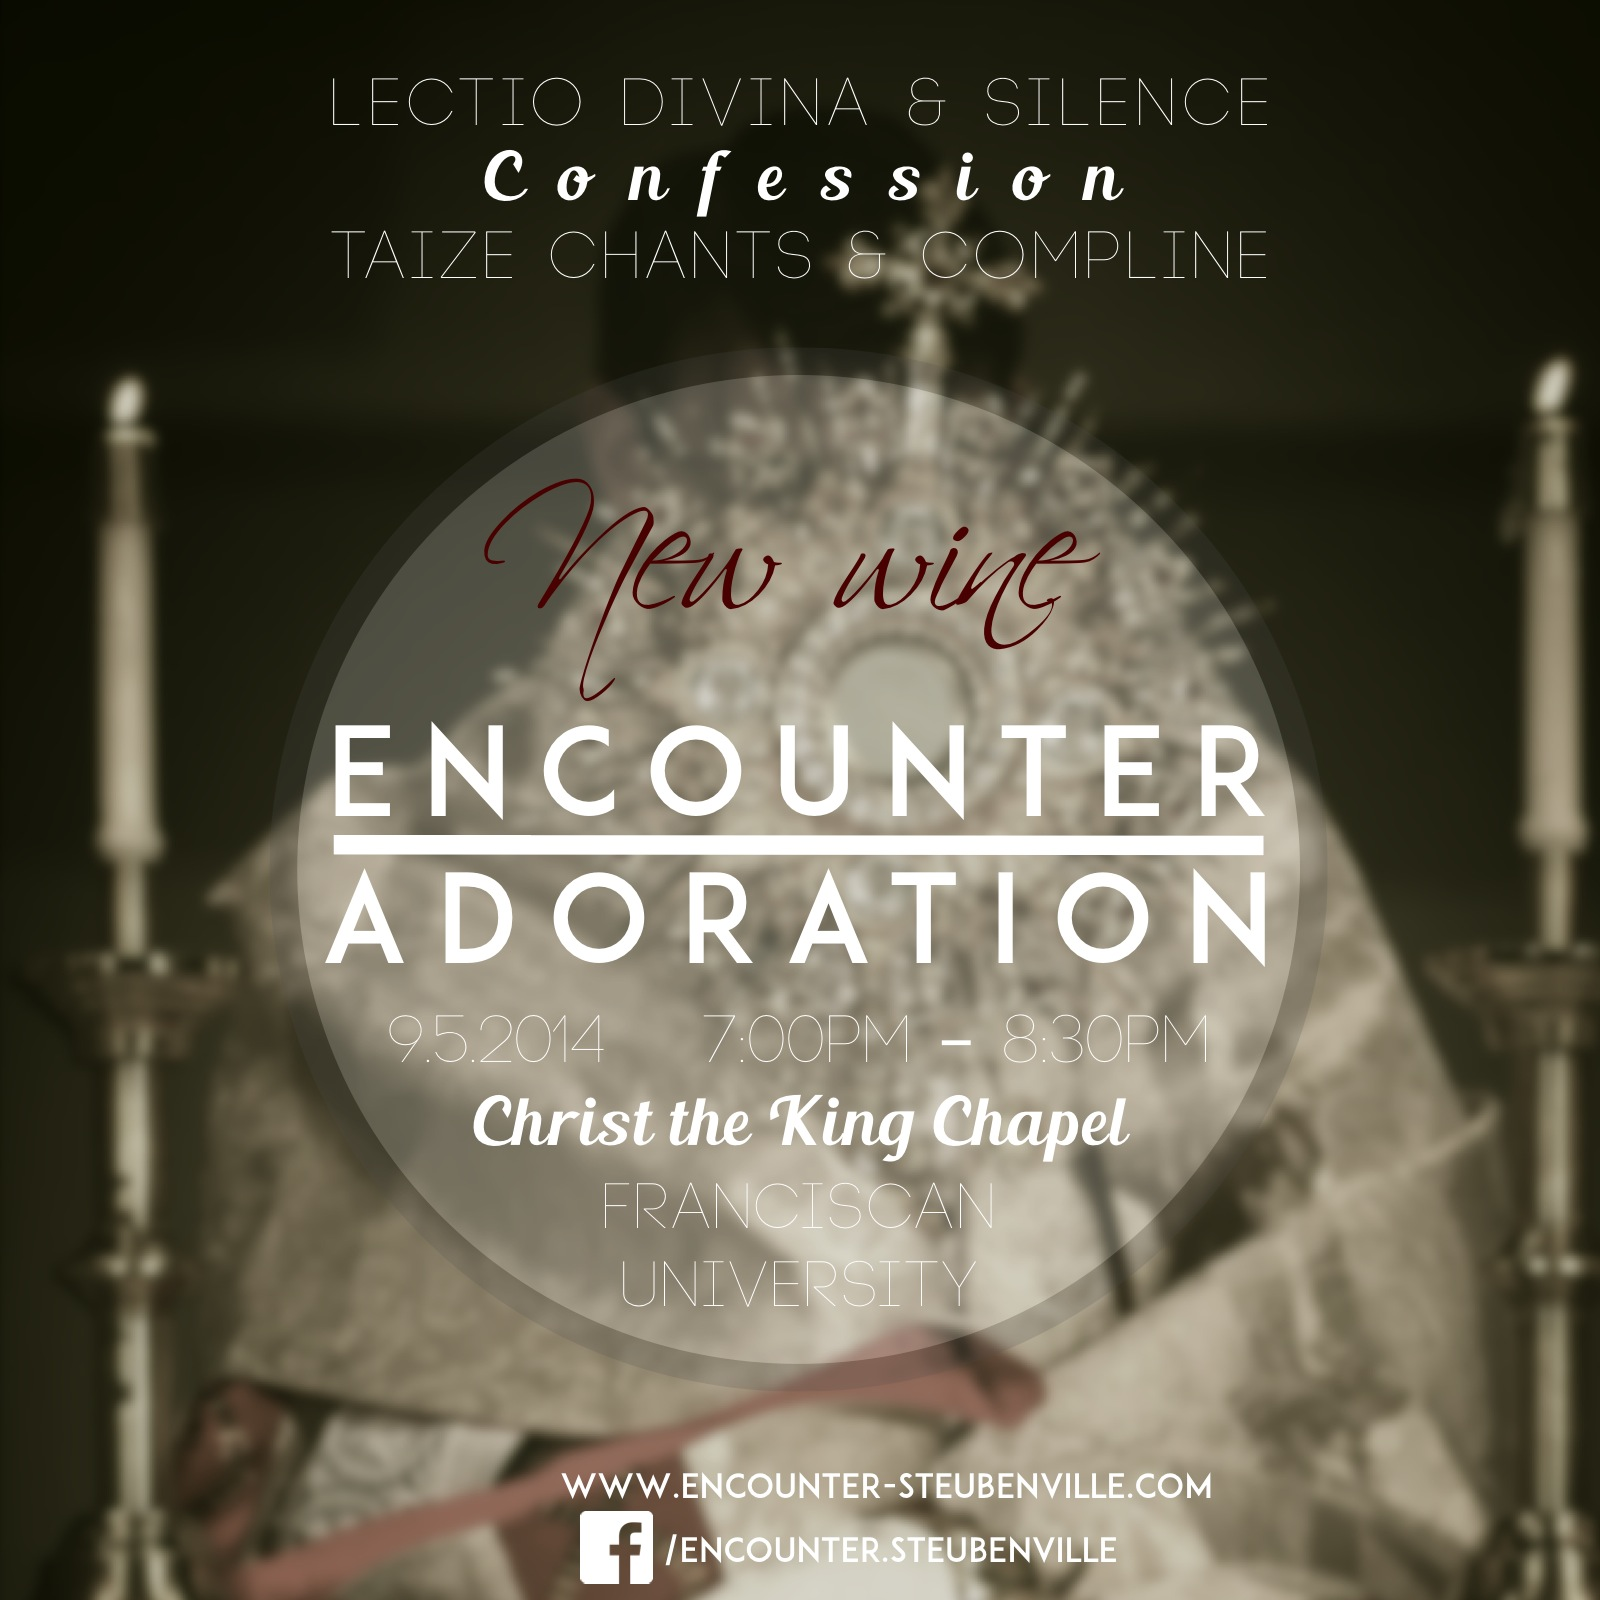 September 5, 2014: Adoration at Christ the King Chapel, Franciscan University of Steubenville